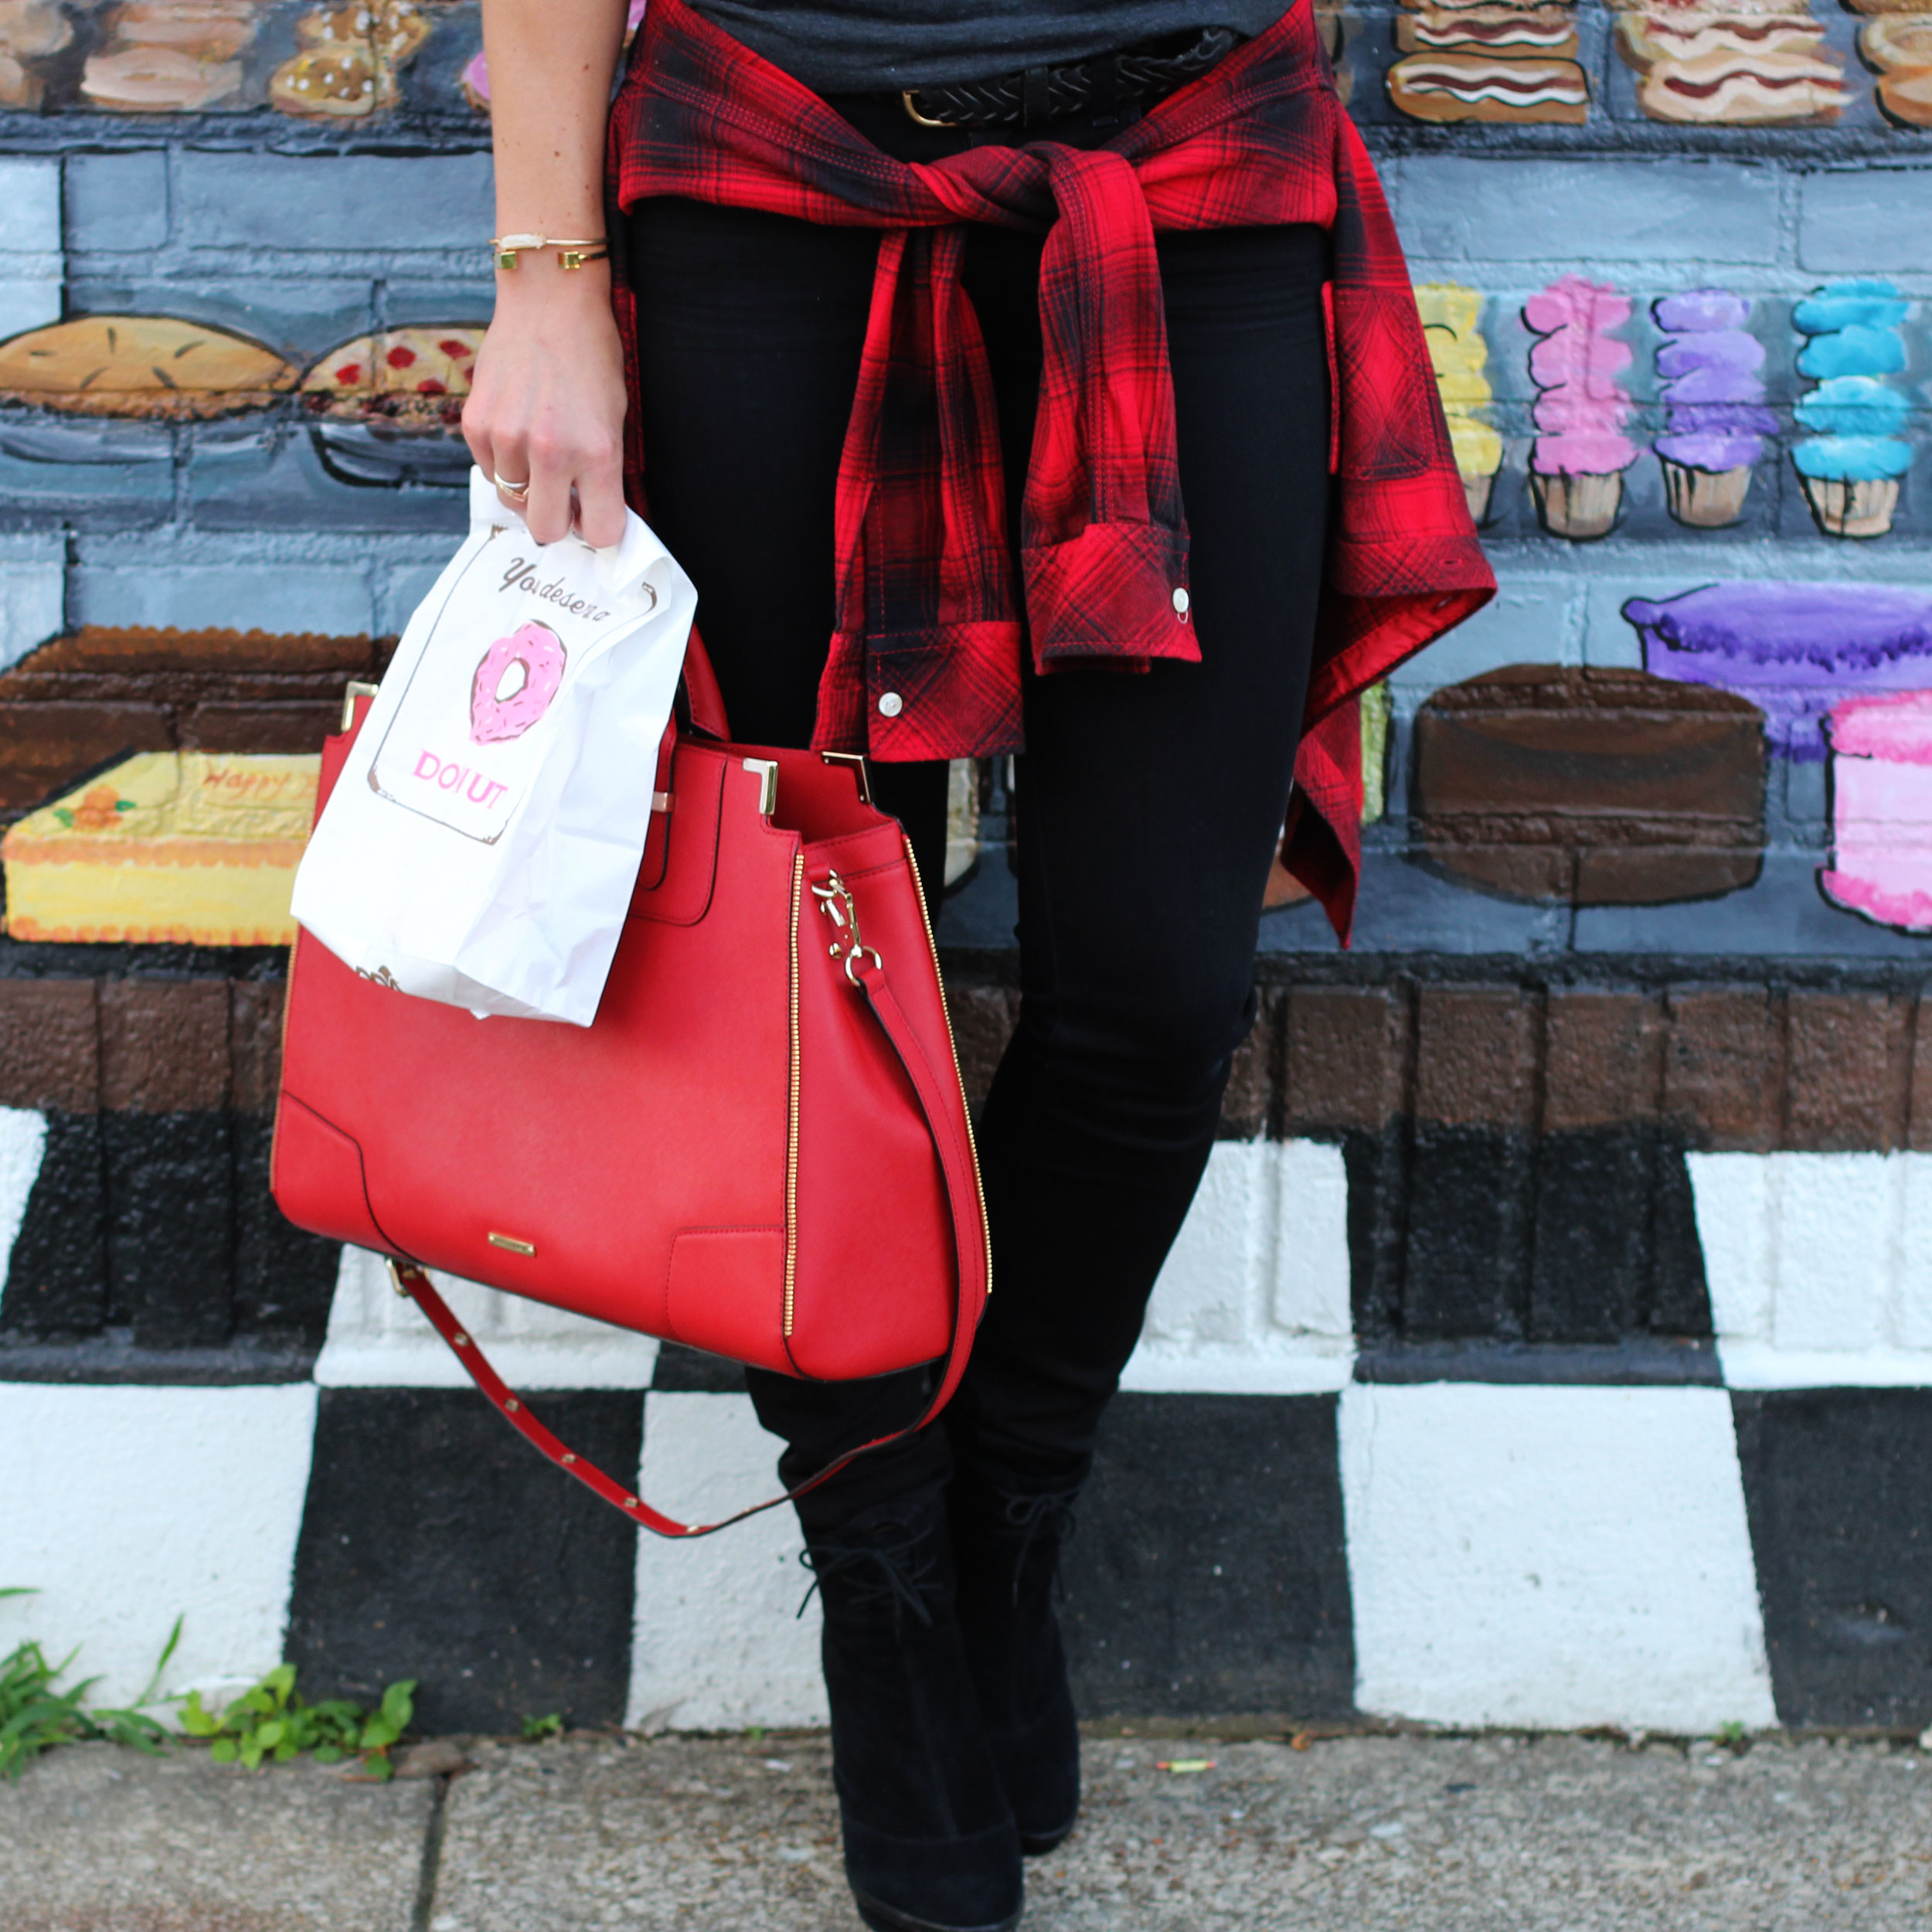 Doughnuts Over Everything Tee, Nord's Bakery Louisville, Maple Bacon Doughnuts, J Brand Skinny Jeans, Plaid Shirt, House of Harlow 1960 Necklace, Rebecca Minkoff Amorous Satchel, Donuts